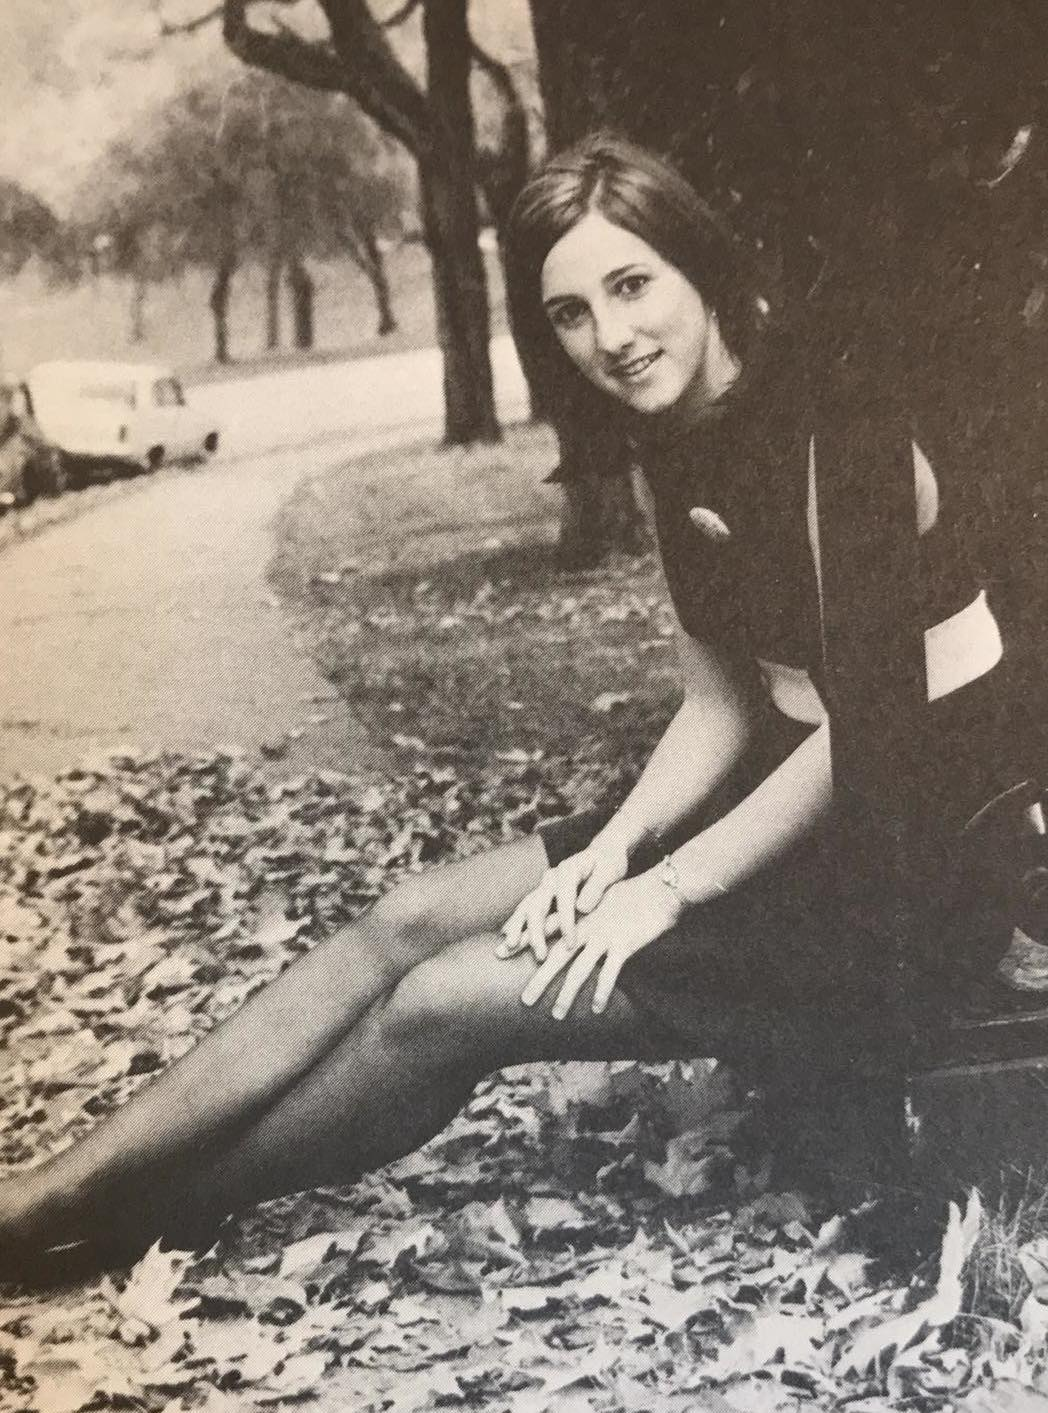 Meg Alexander, from the Baldwin Yearbook, 1969.